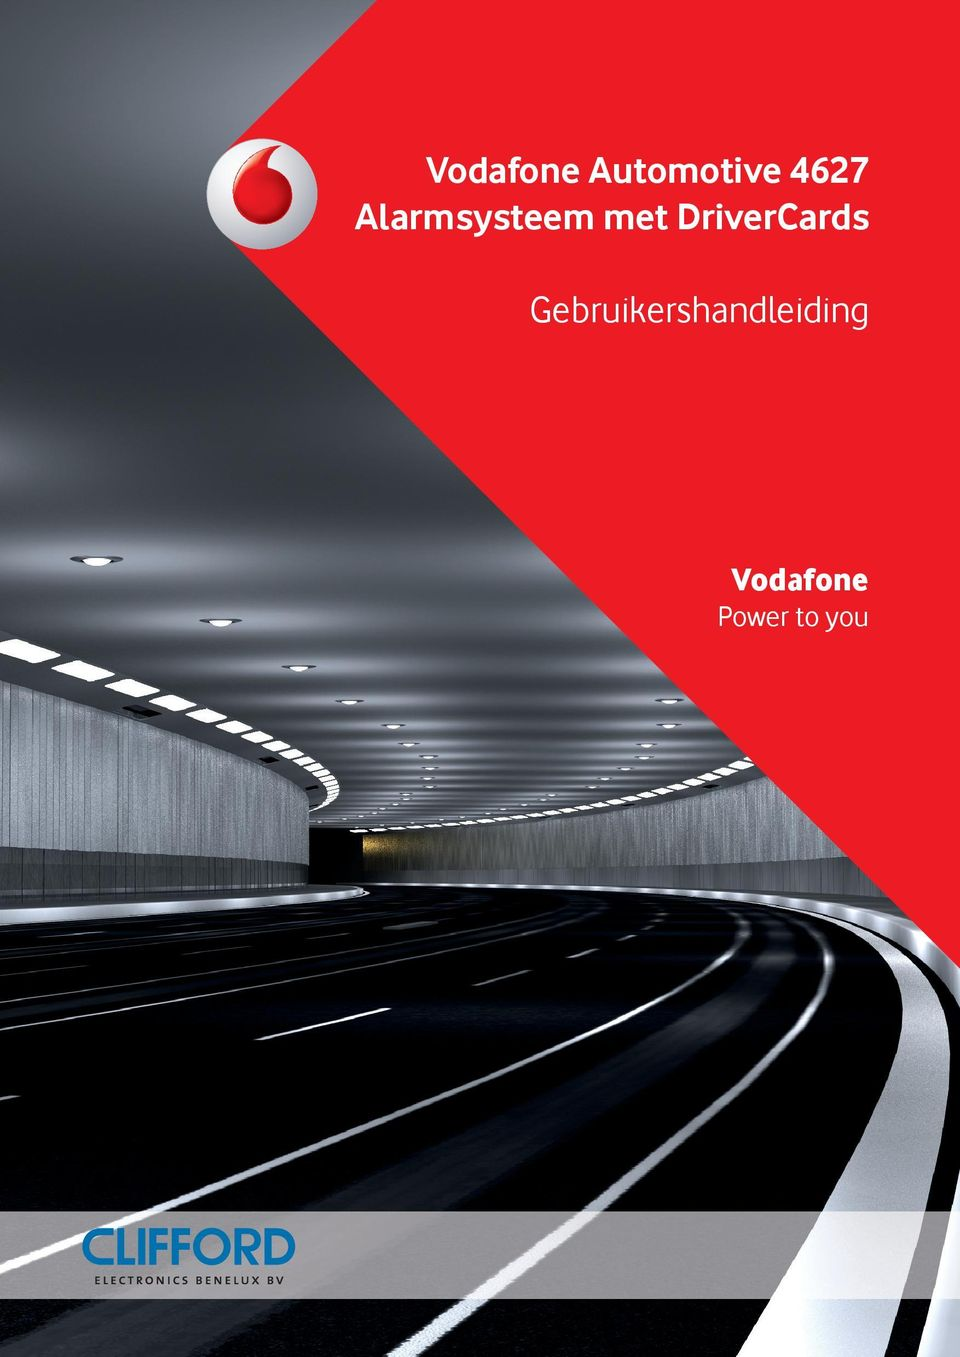 DriverCards